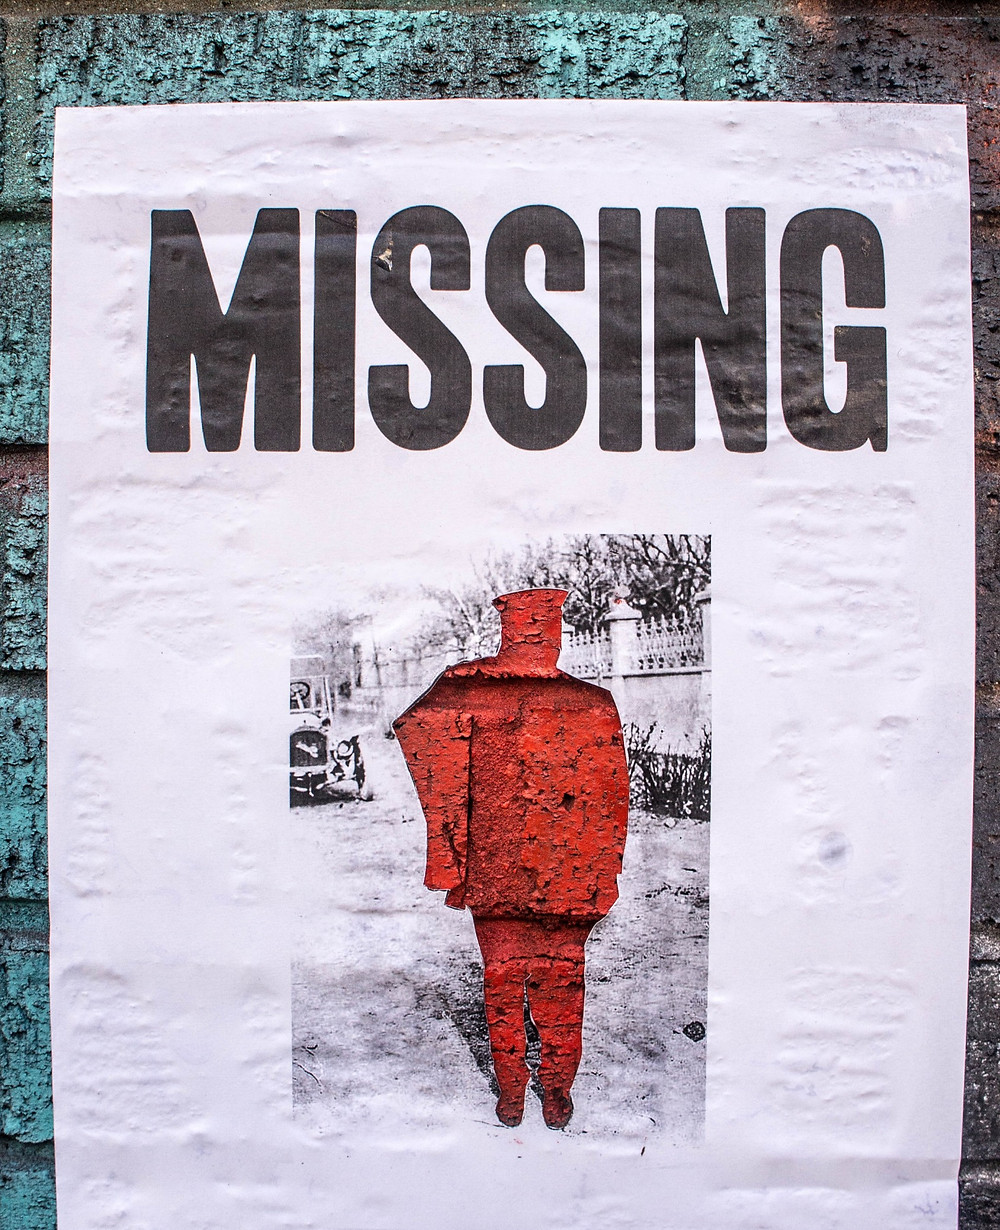 a person is missing